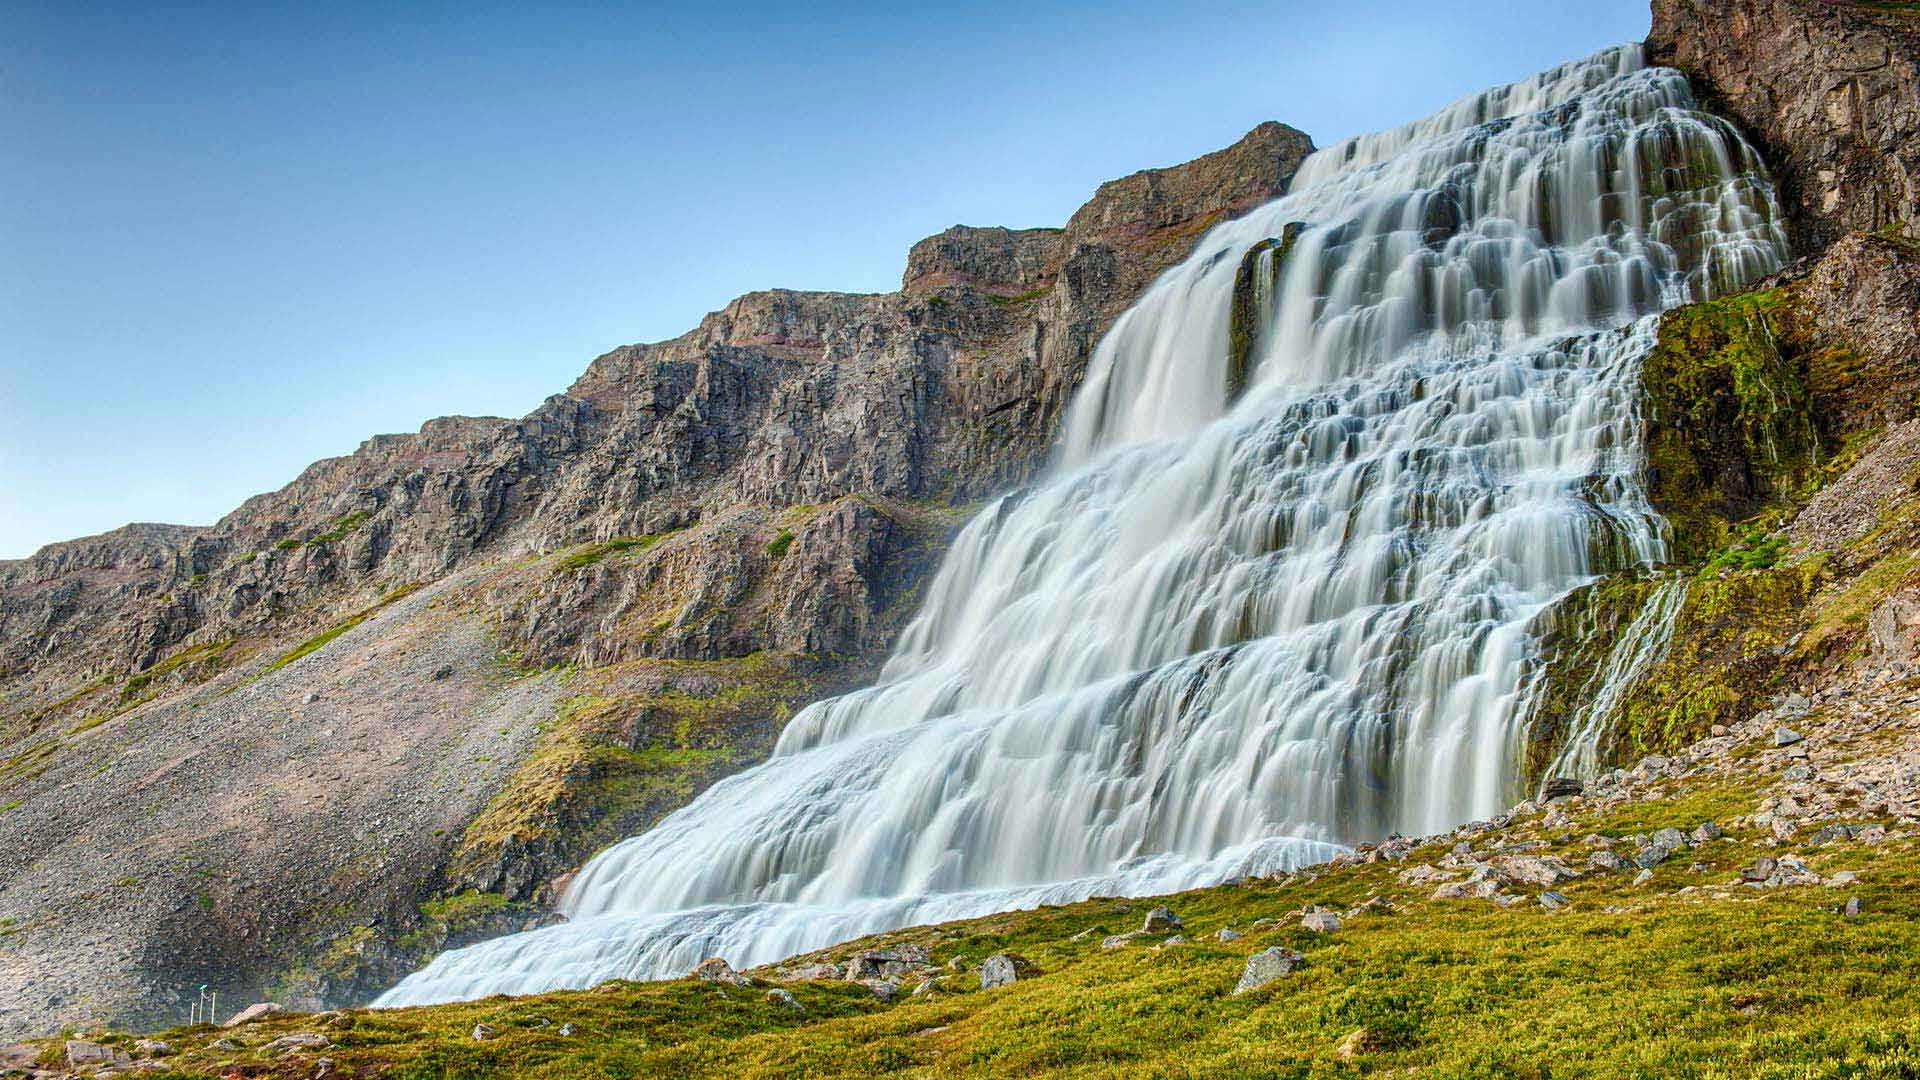 Dynjandi waterfall in Iceland's Westfjords region